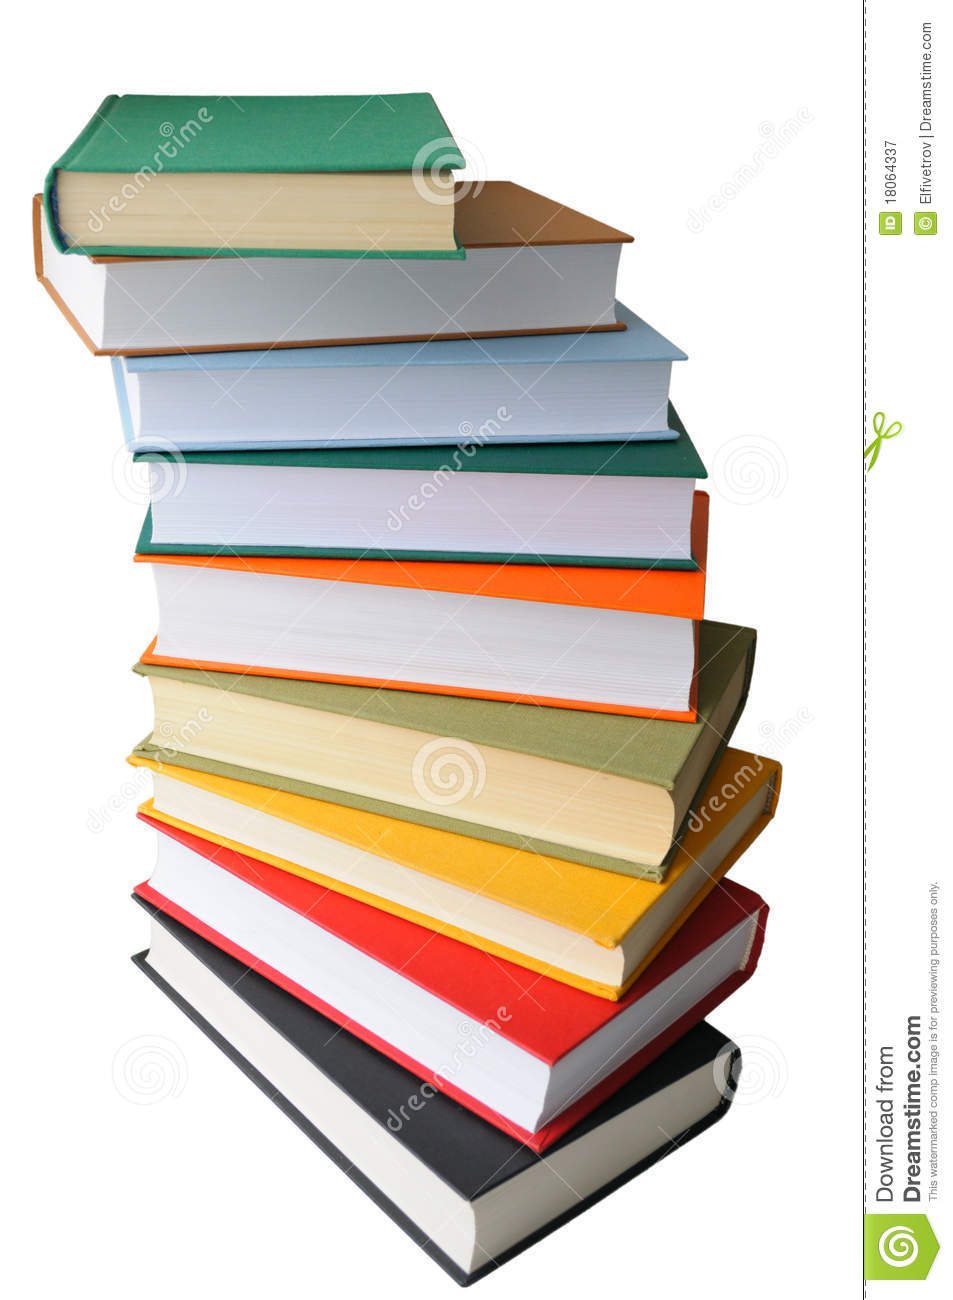 Colored Books On White Background Stock Image - Image of blue ...